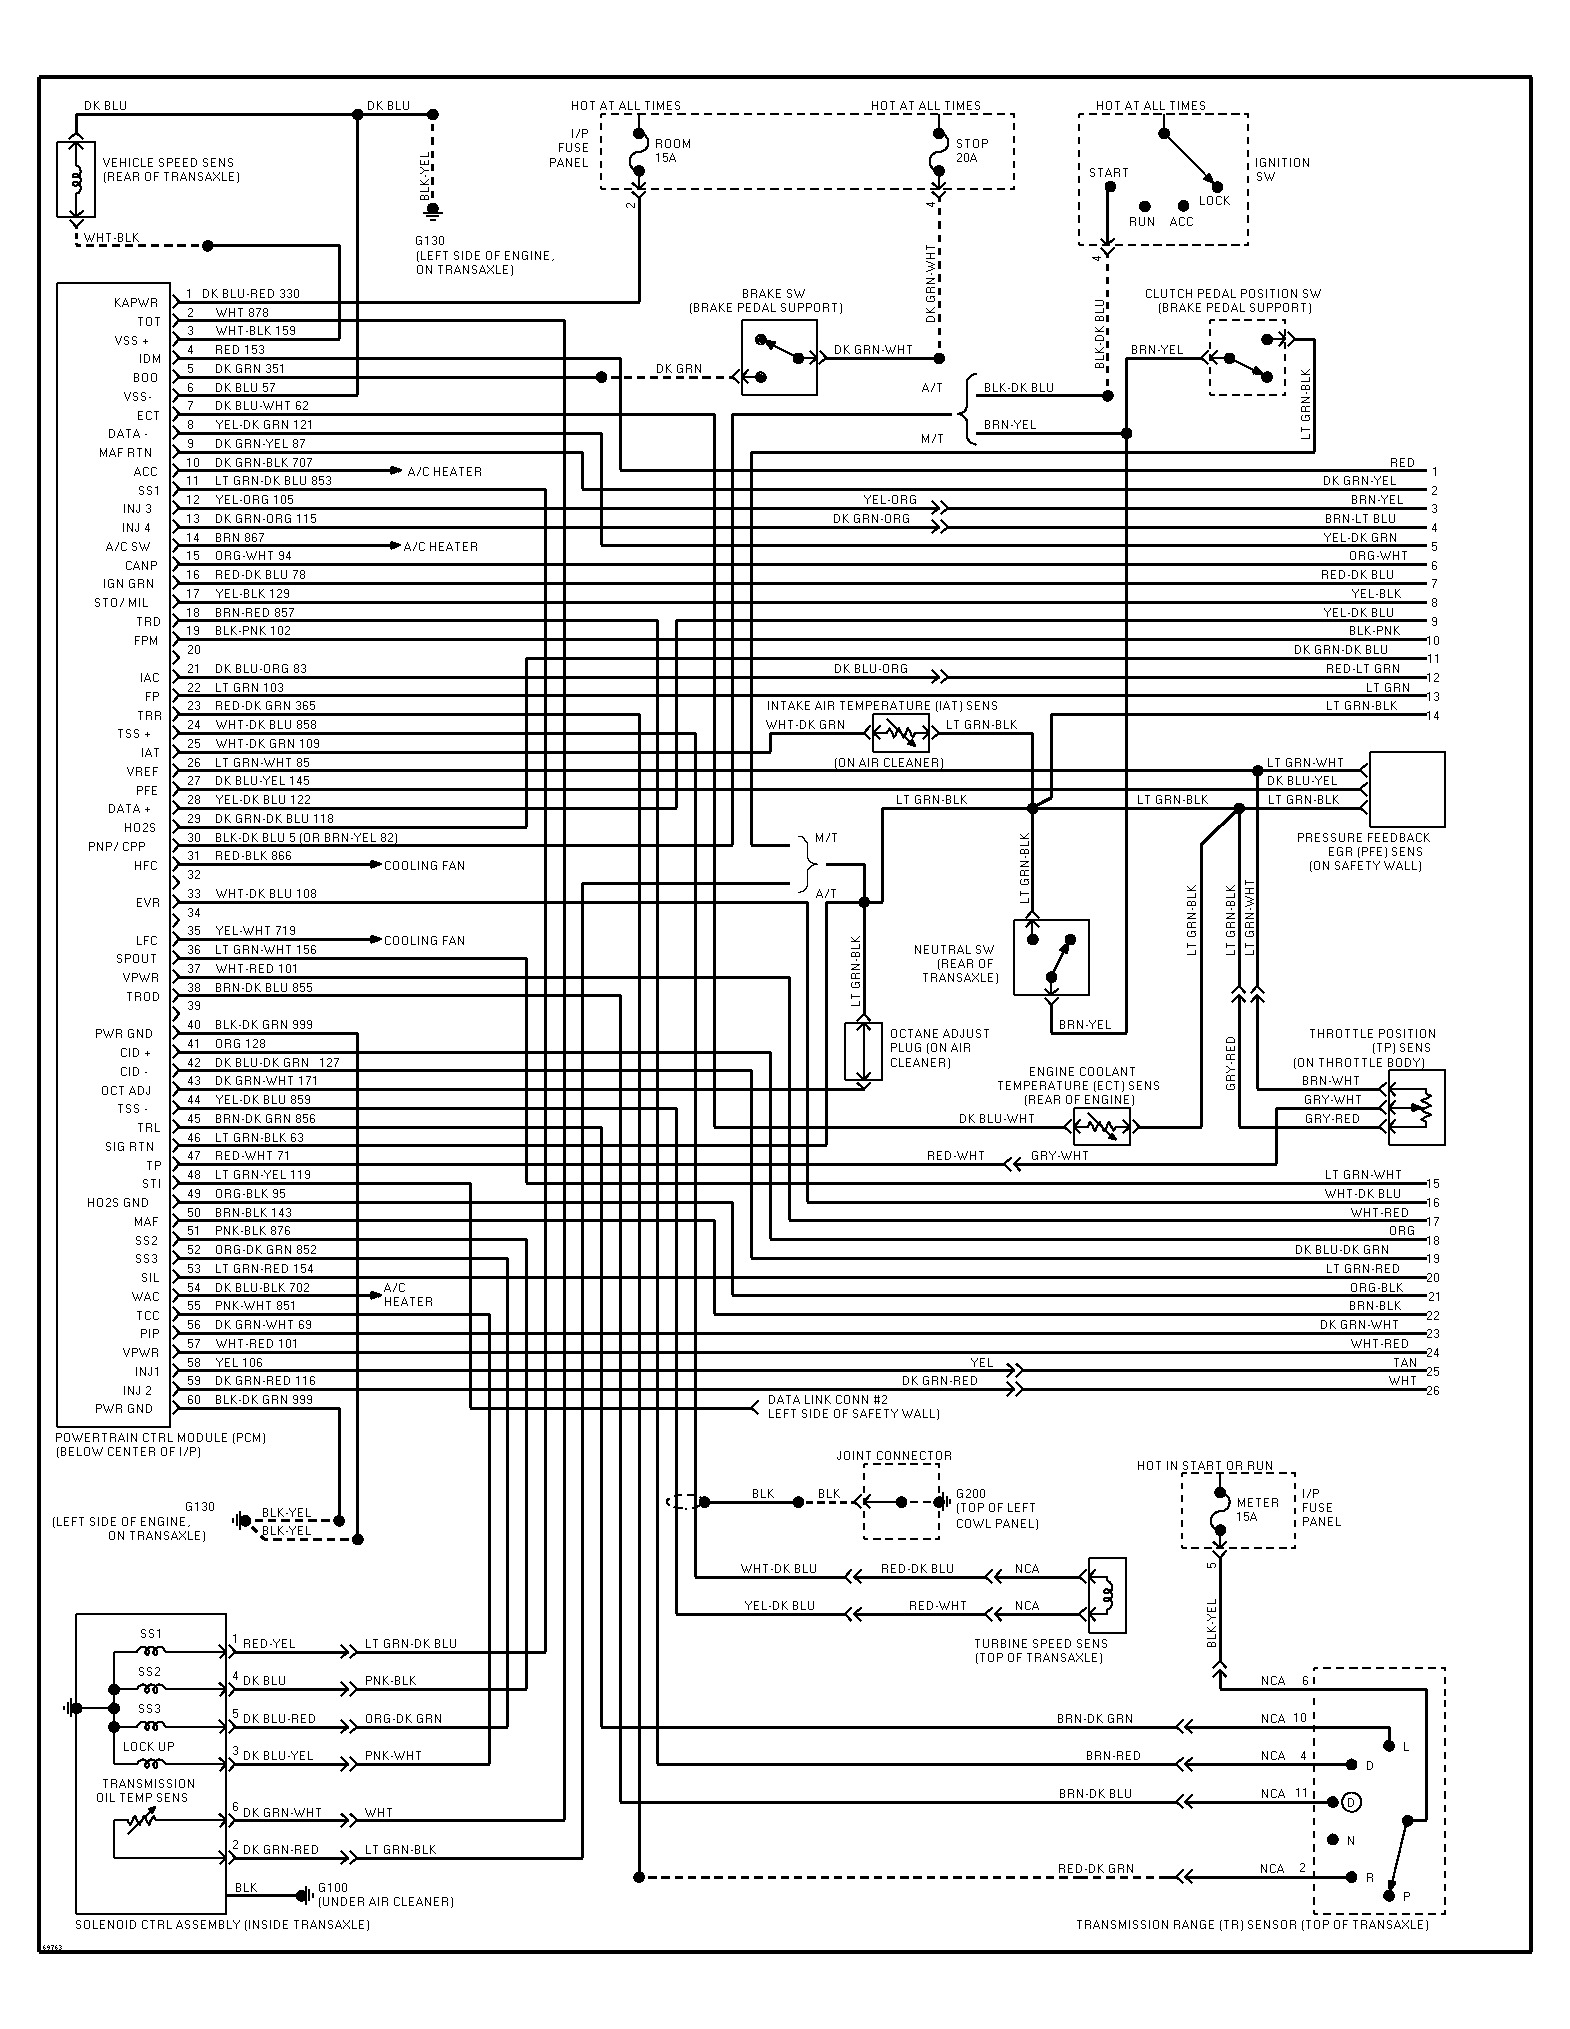 original 1995 ford escort wiring diagram i need to find a color coded ford escort wiring diagram at mifinder.co